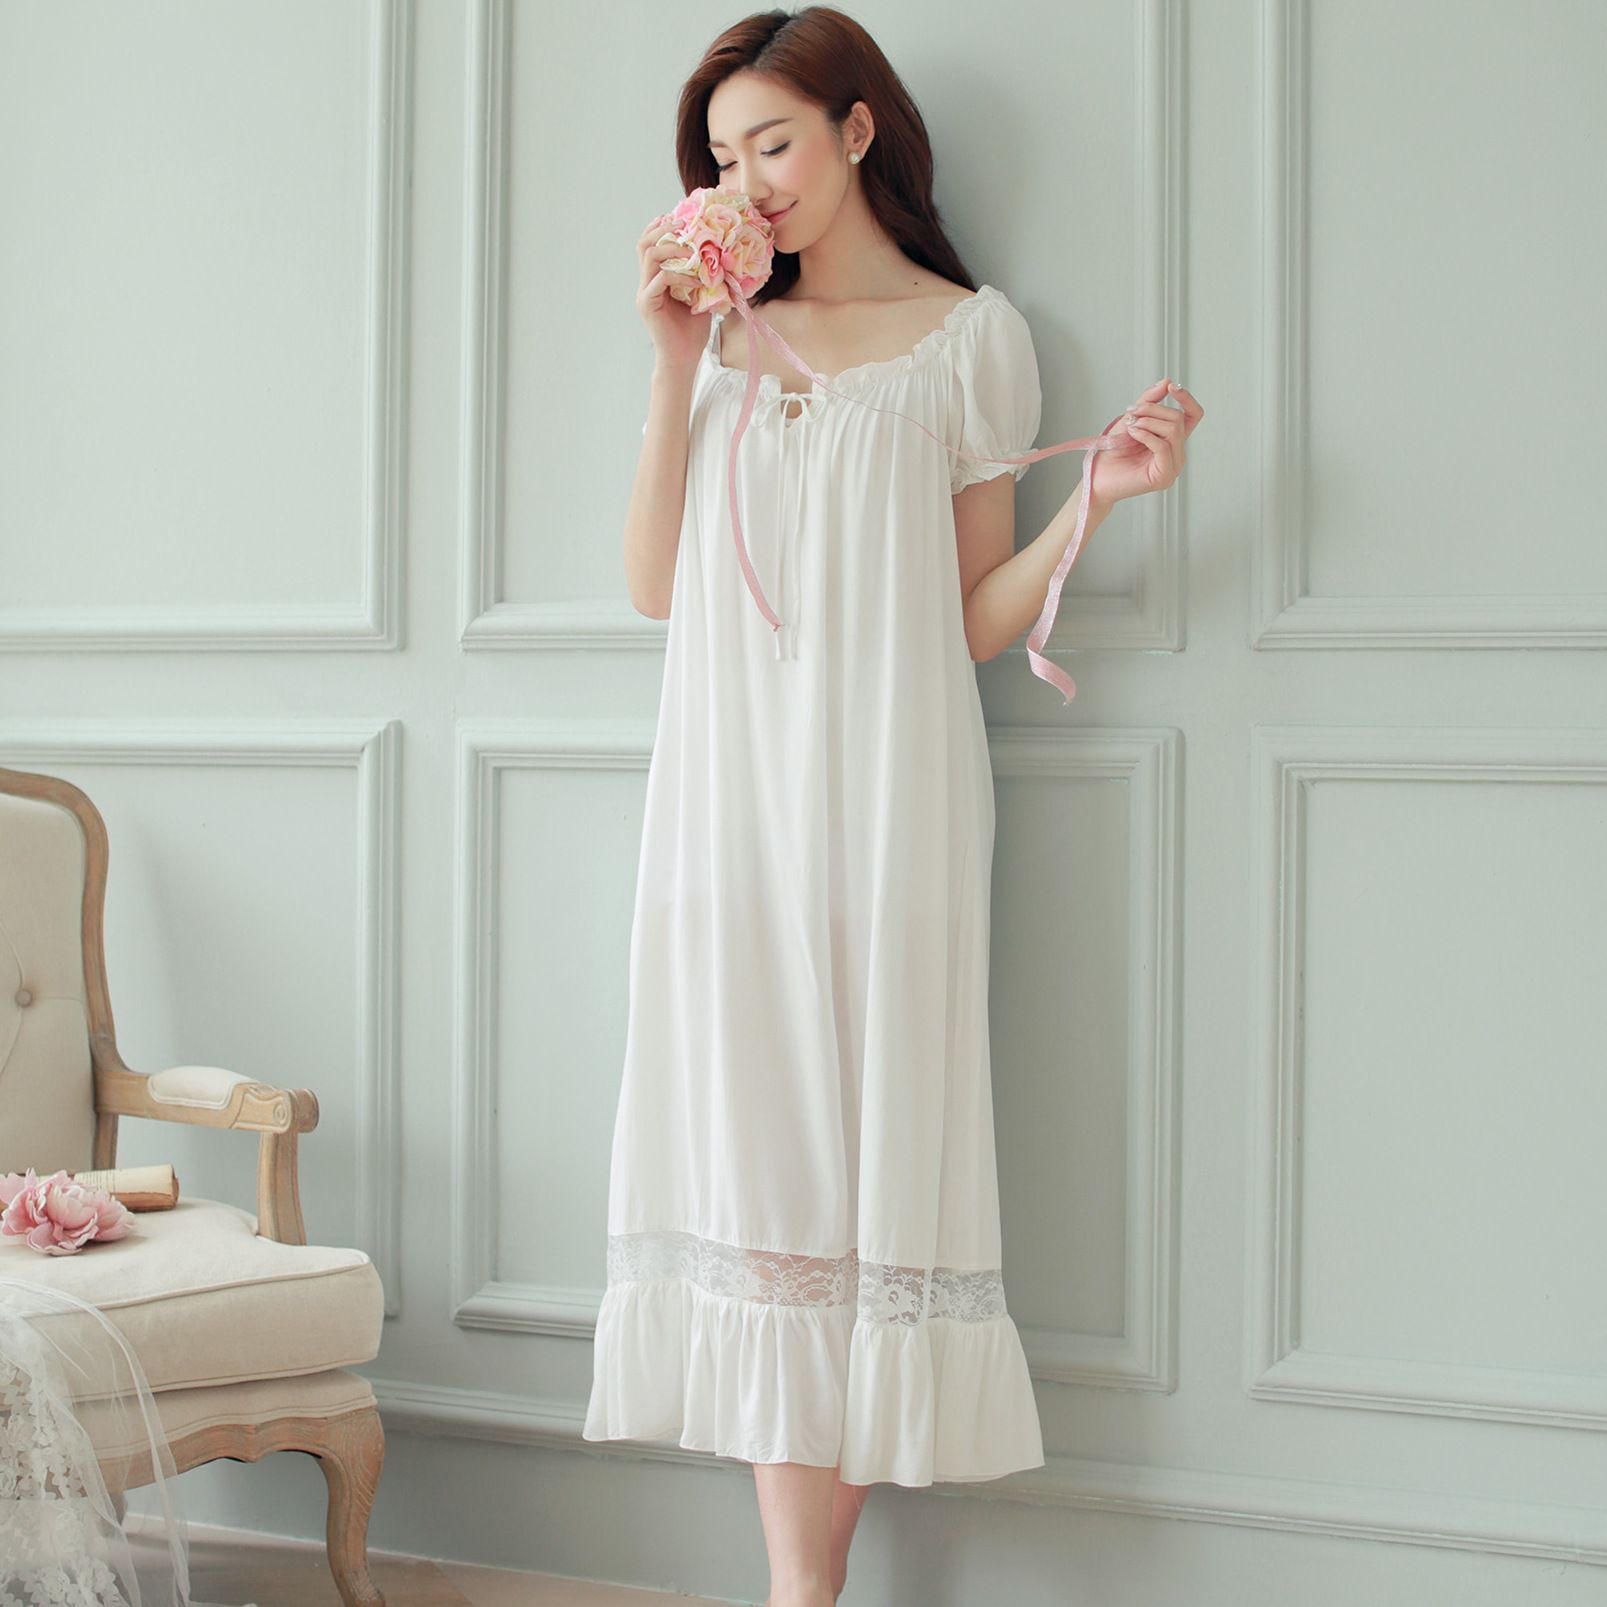 Hot Womens Long Sleeping Dress White Nightgown Short Sleeve Summer  Nightdress Elegant Vintage Nightgowns Home Dress For Sleeping-in Nightgowns    Sleepshirts ... 9d66fa2e0